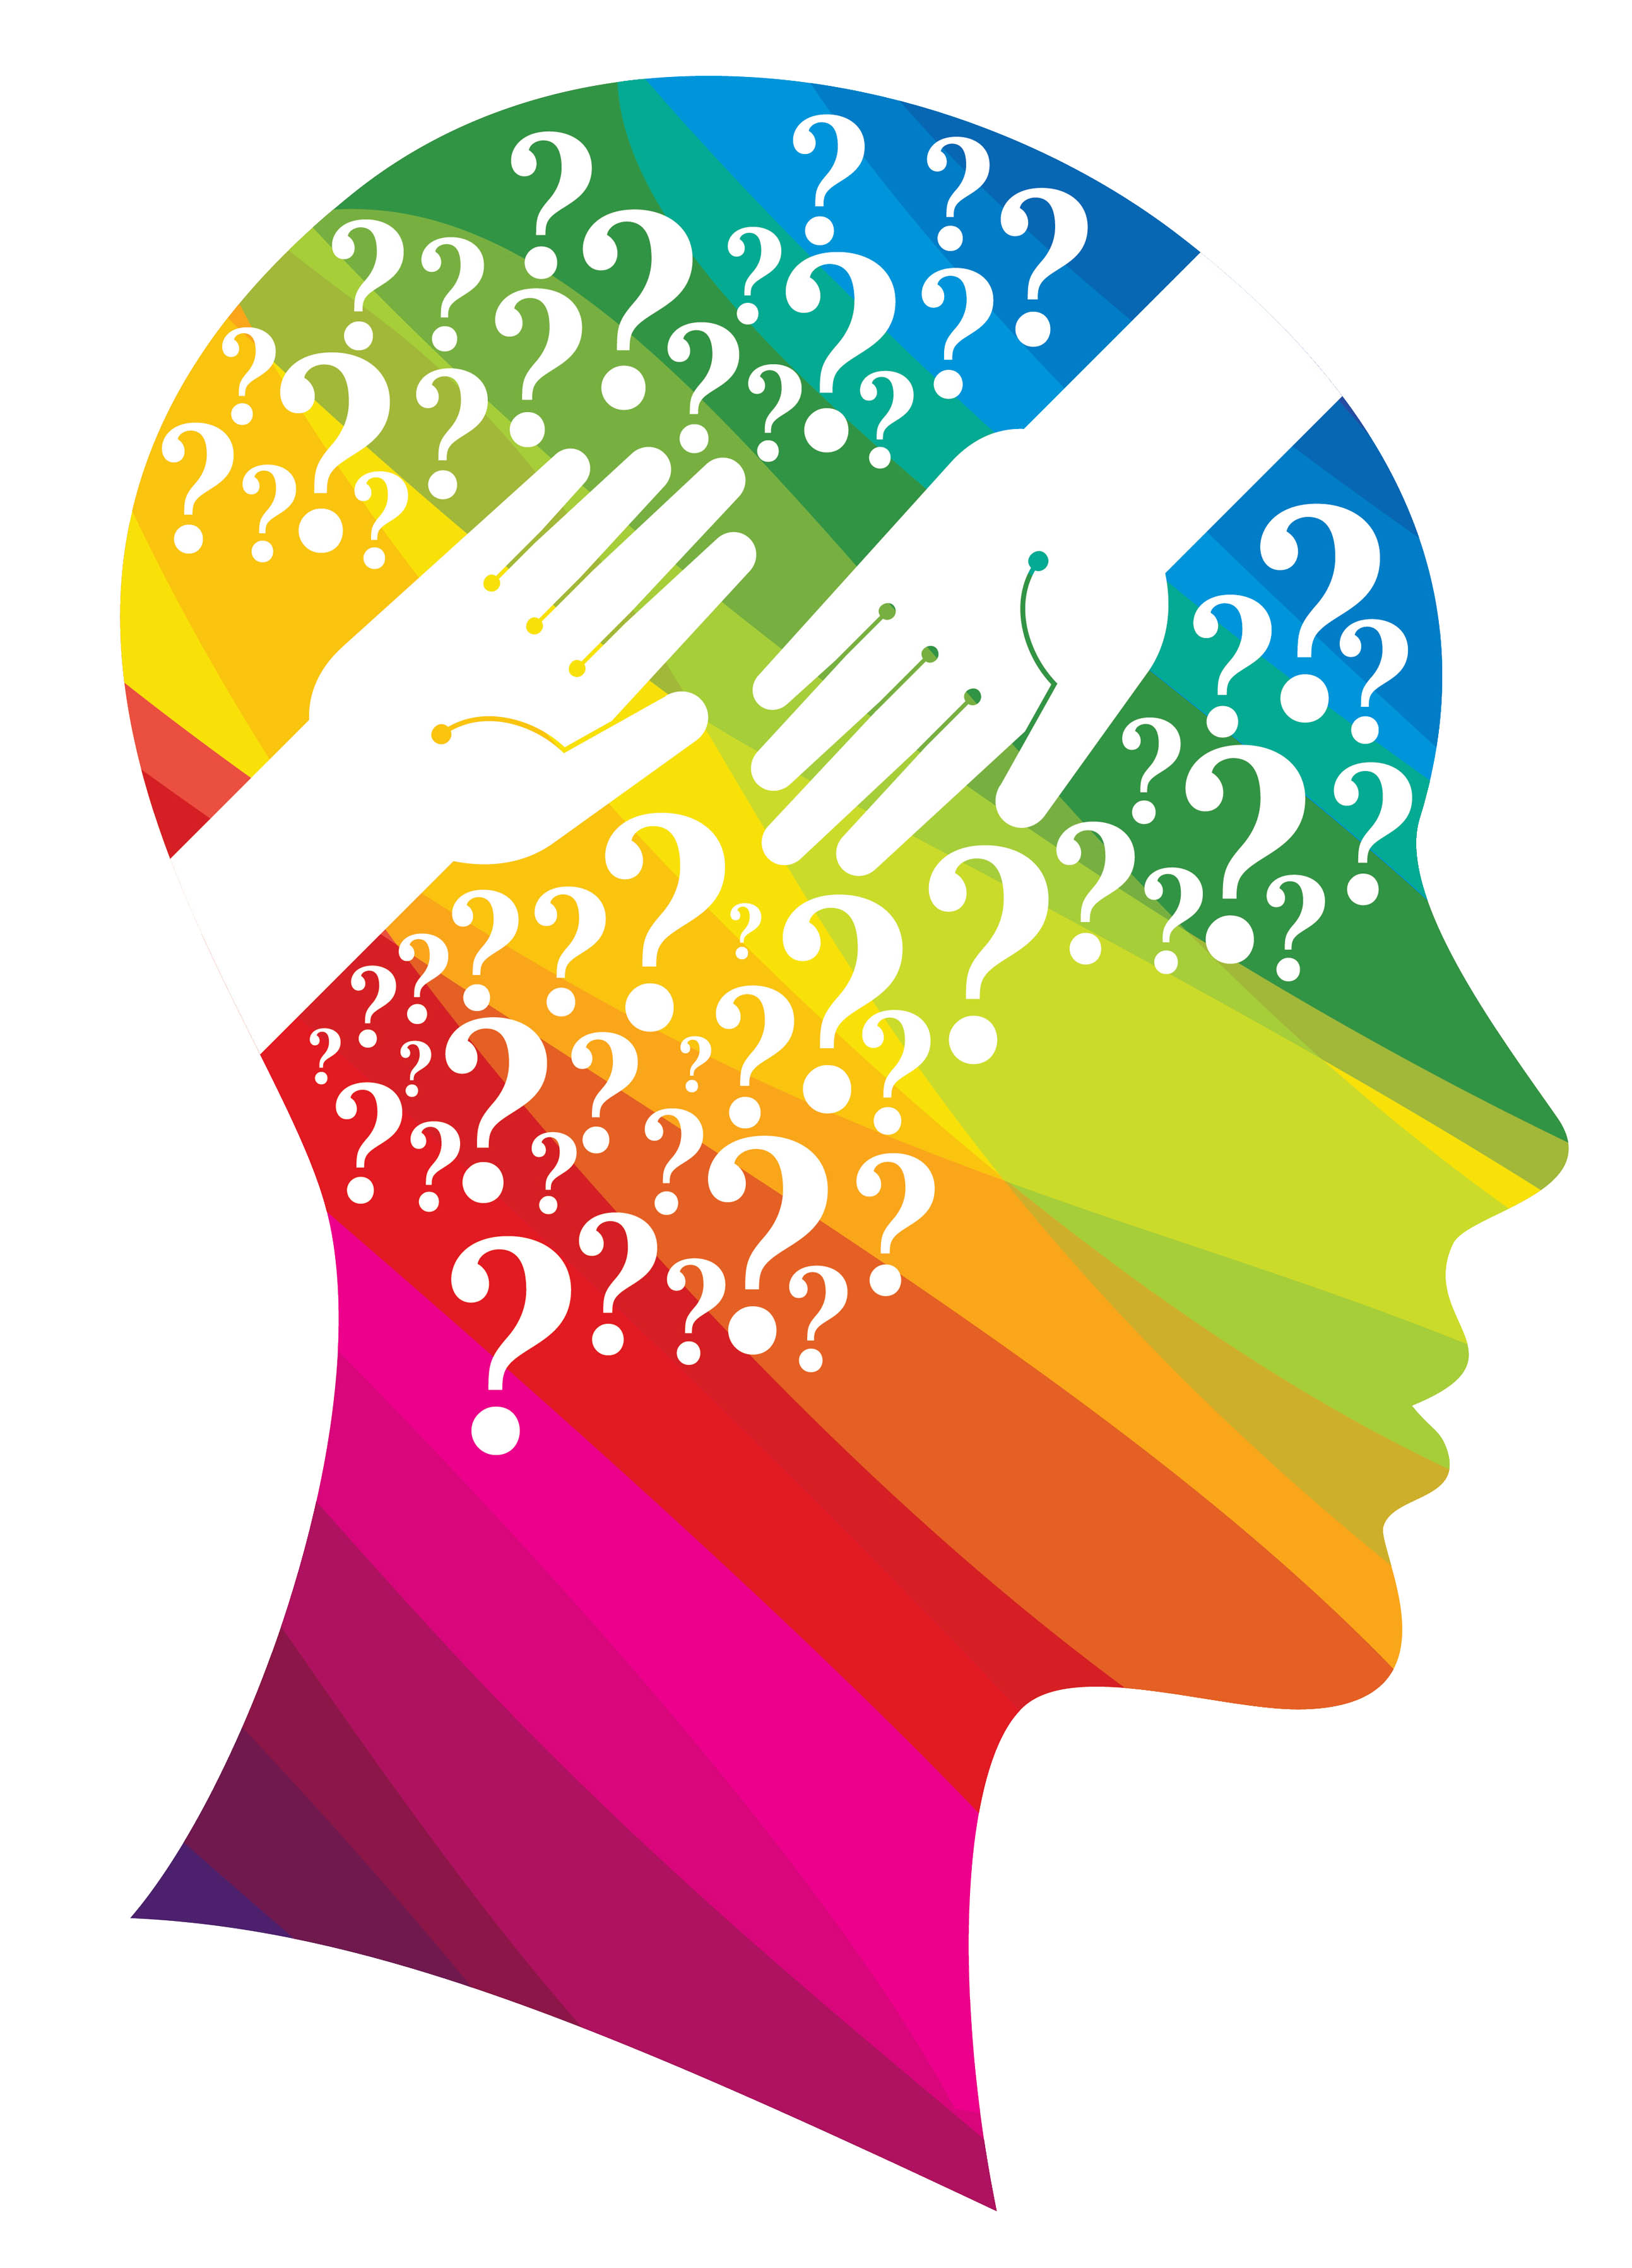 Upstate researchers seek participants for mental health study.